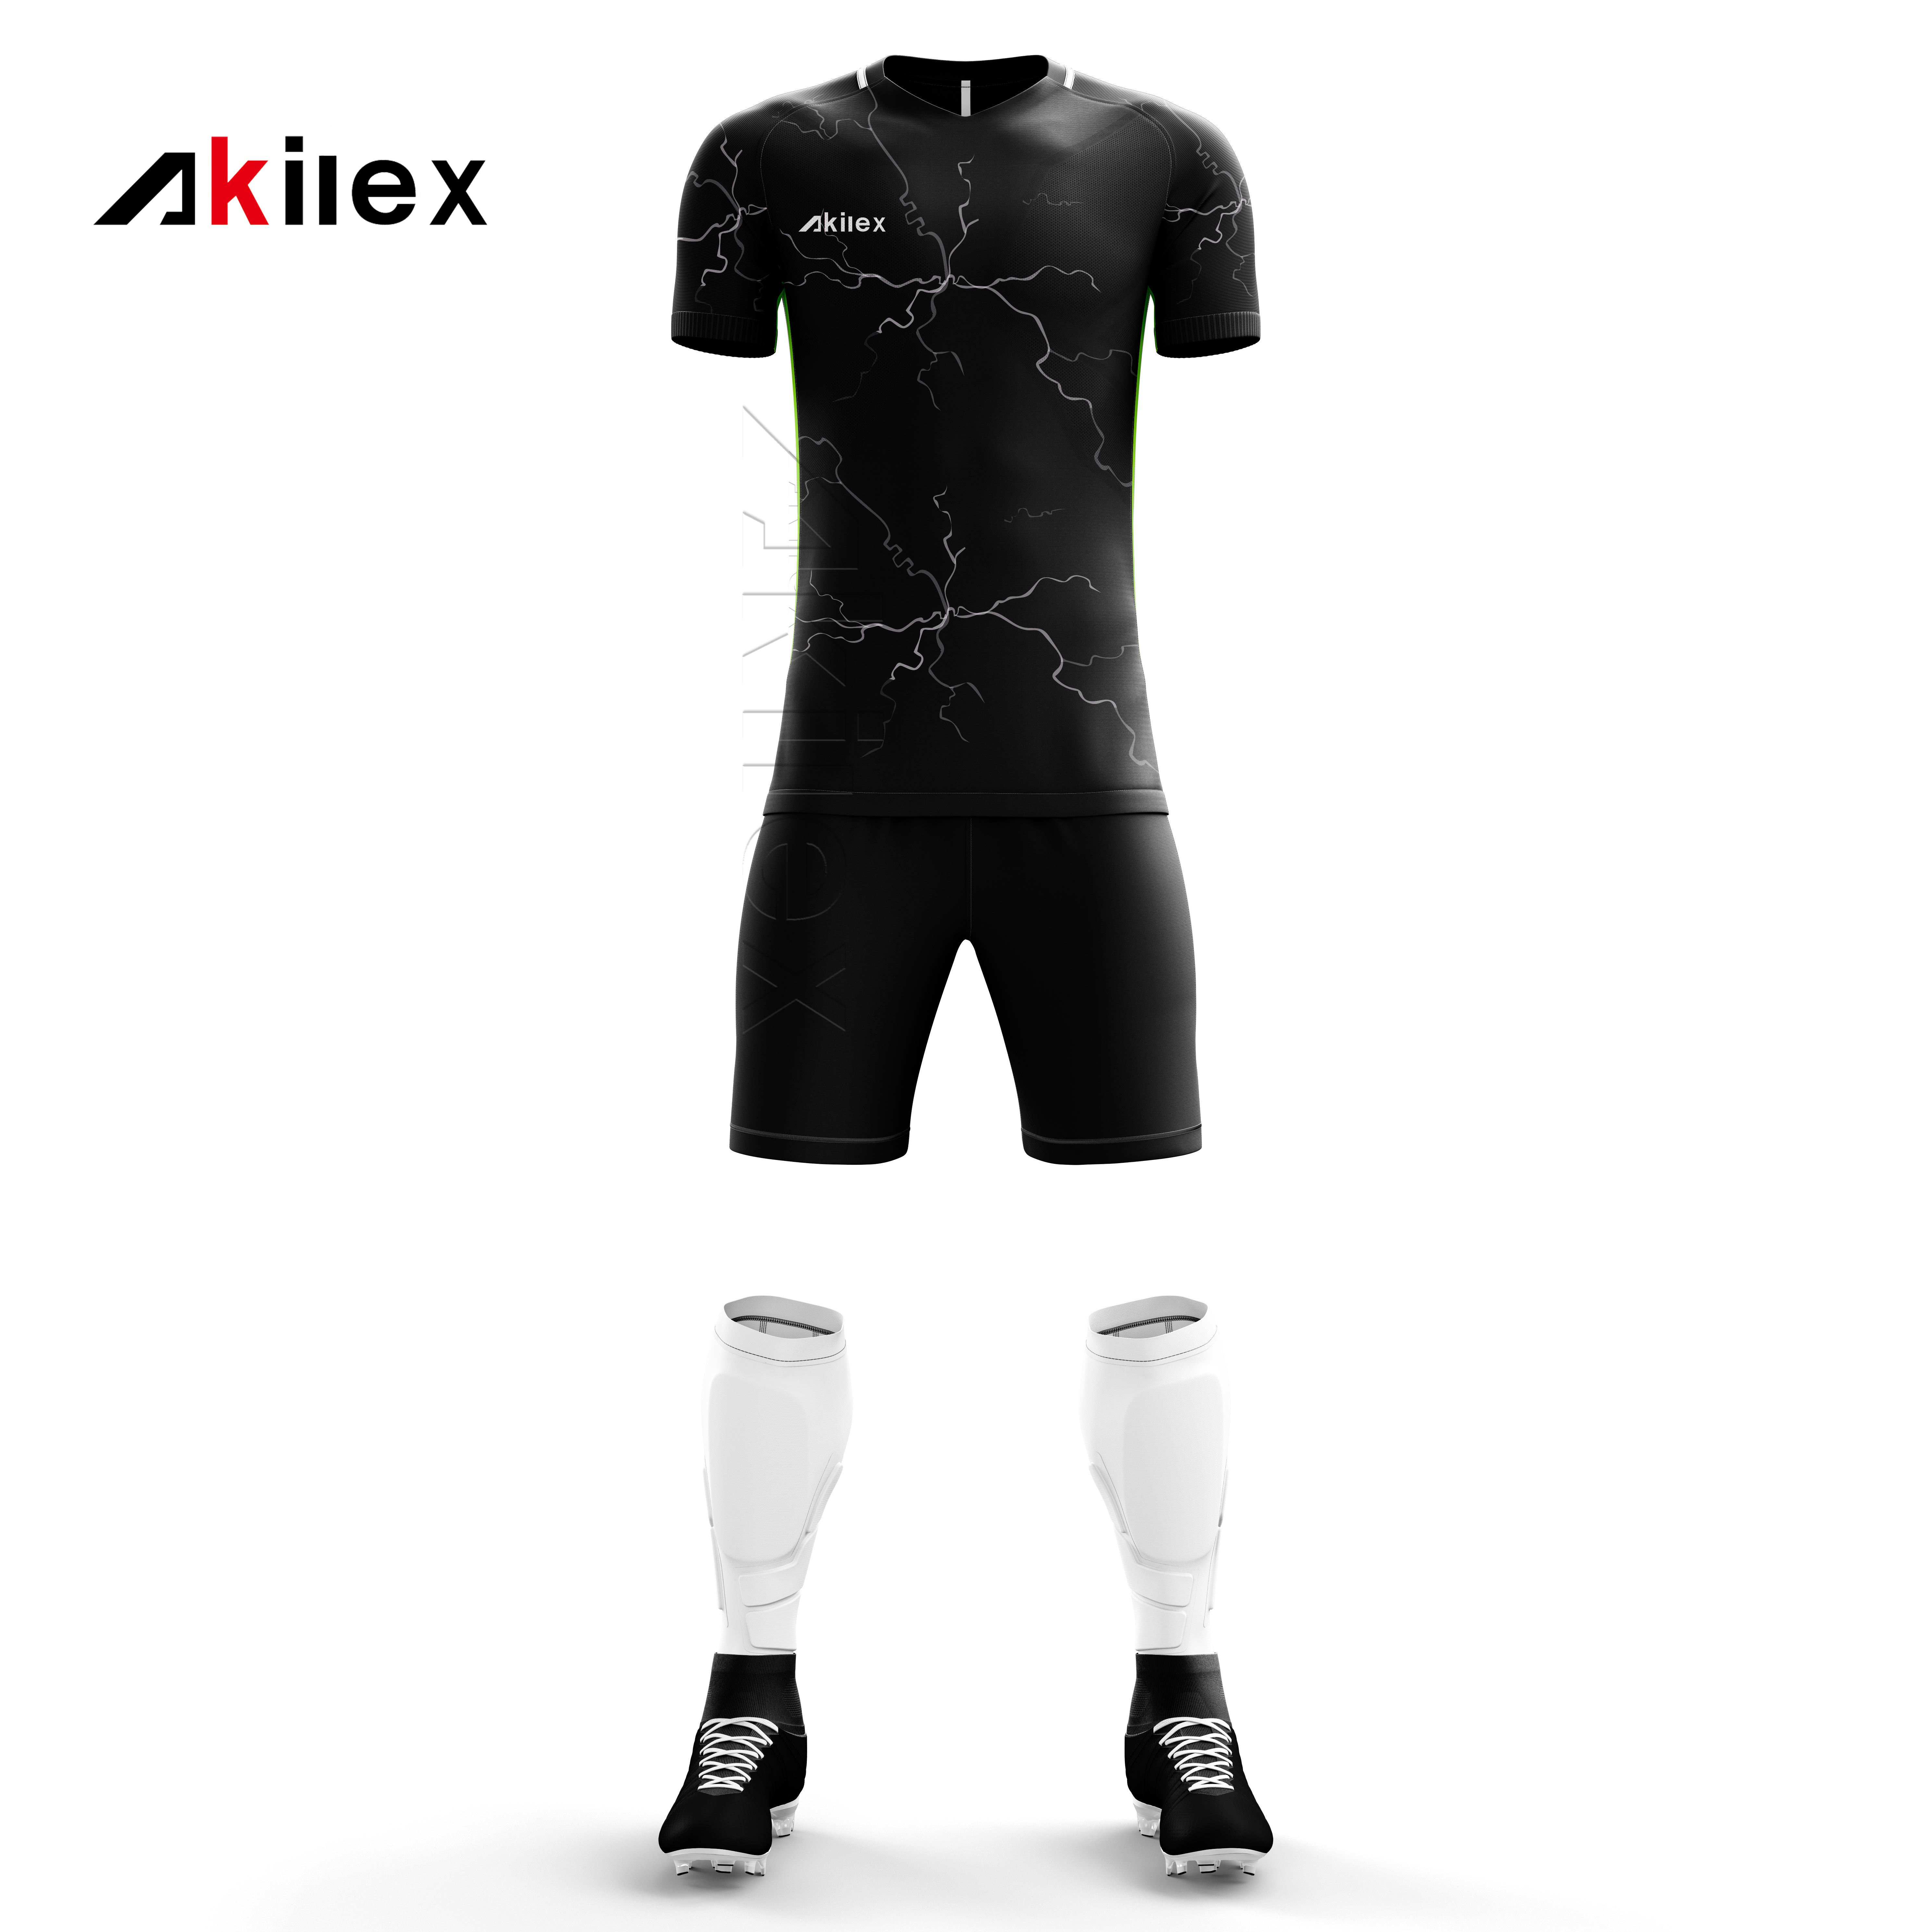 2020 Hot Selling Quick Dry Vorm Houden Voetbal Training Uniform